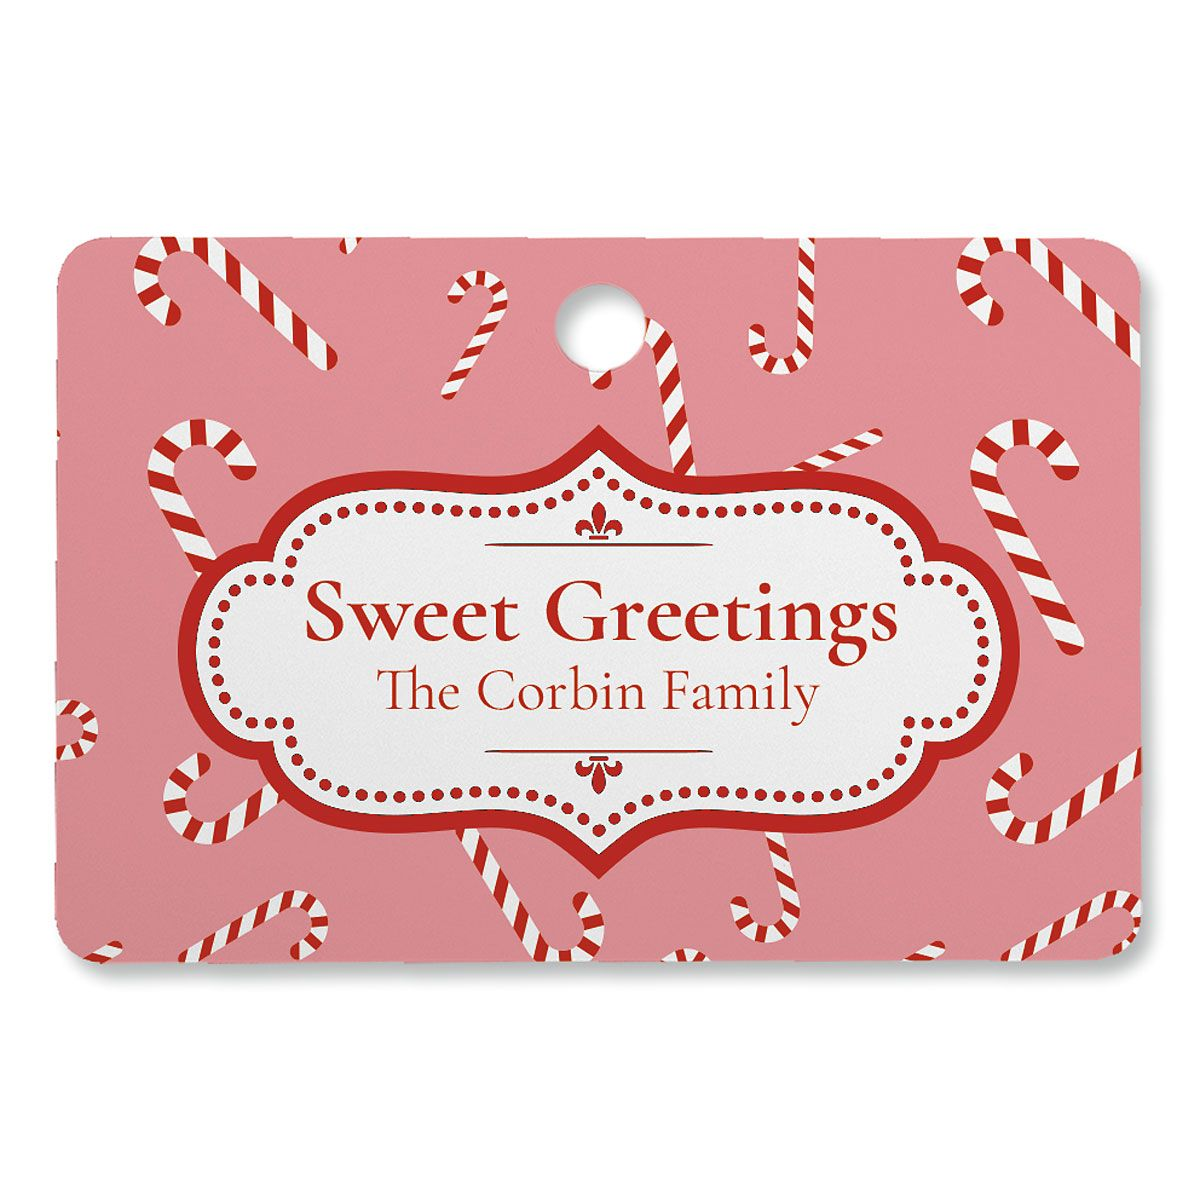 Sweet Greetings Personalized Ornament Rectangle